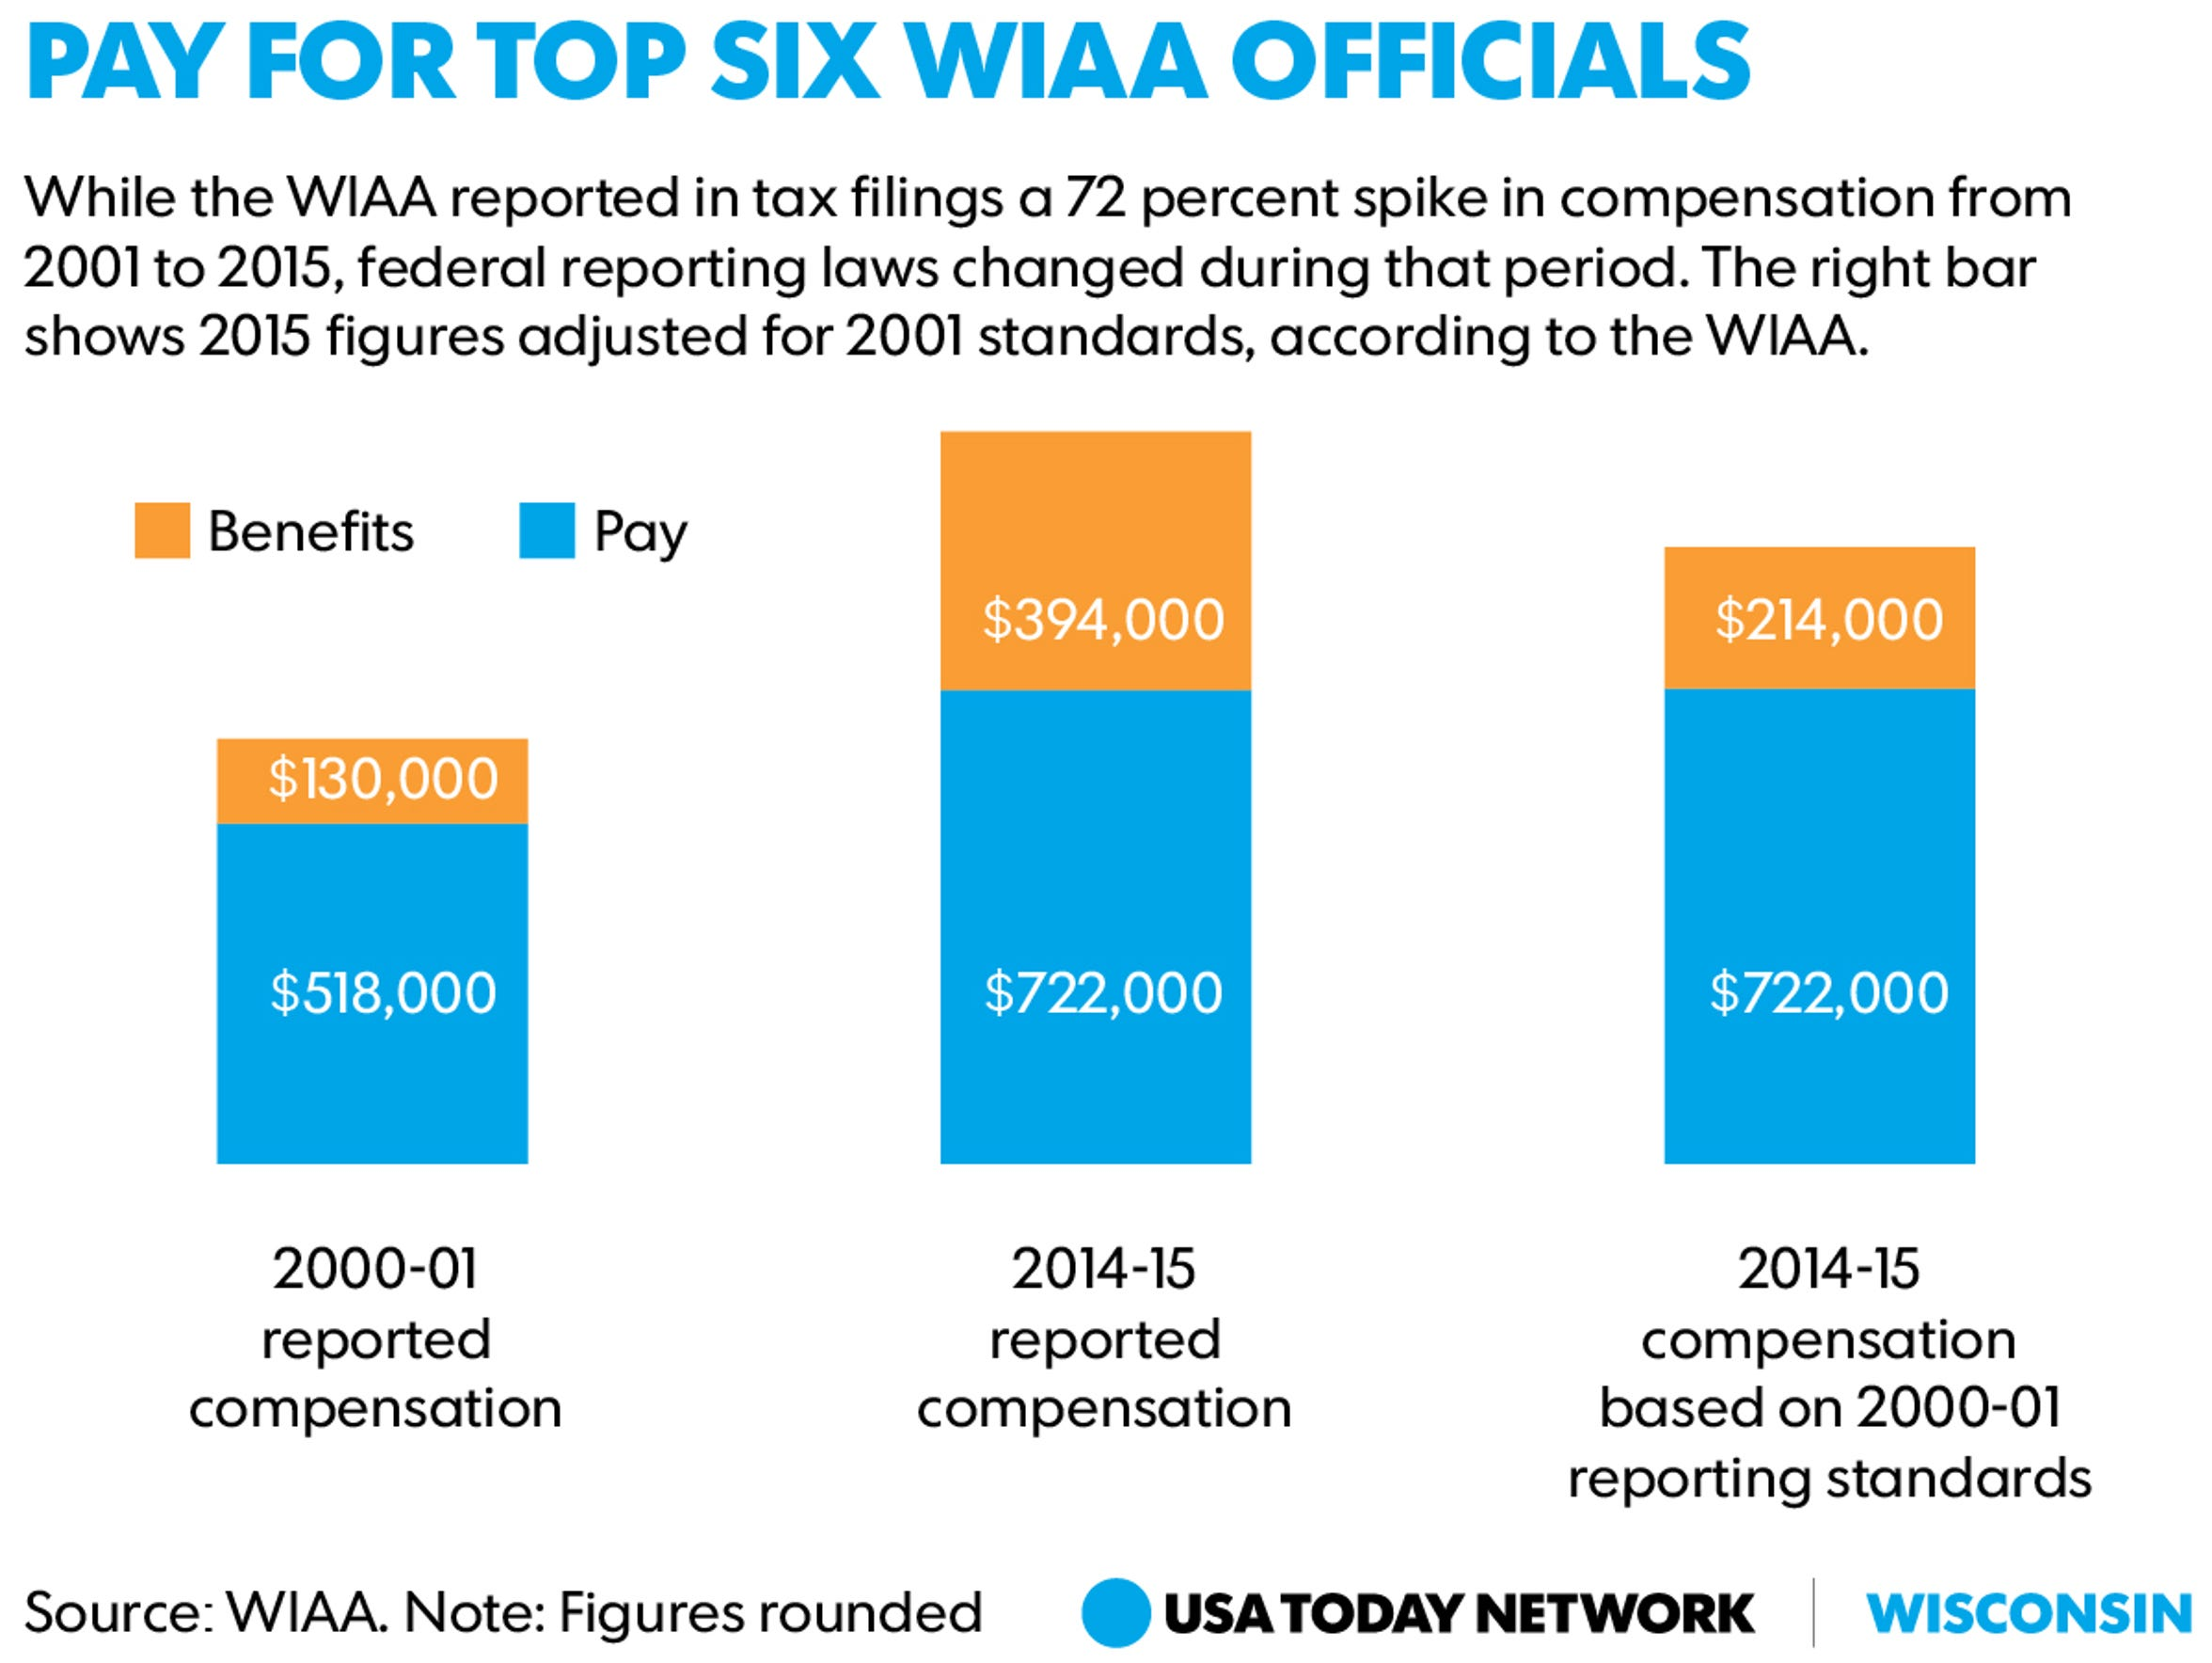 Graphic comparing WIAA compensation